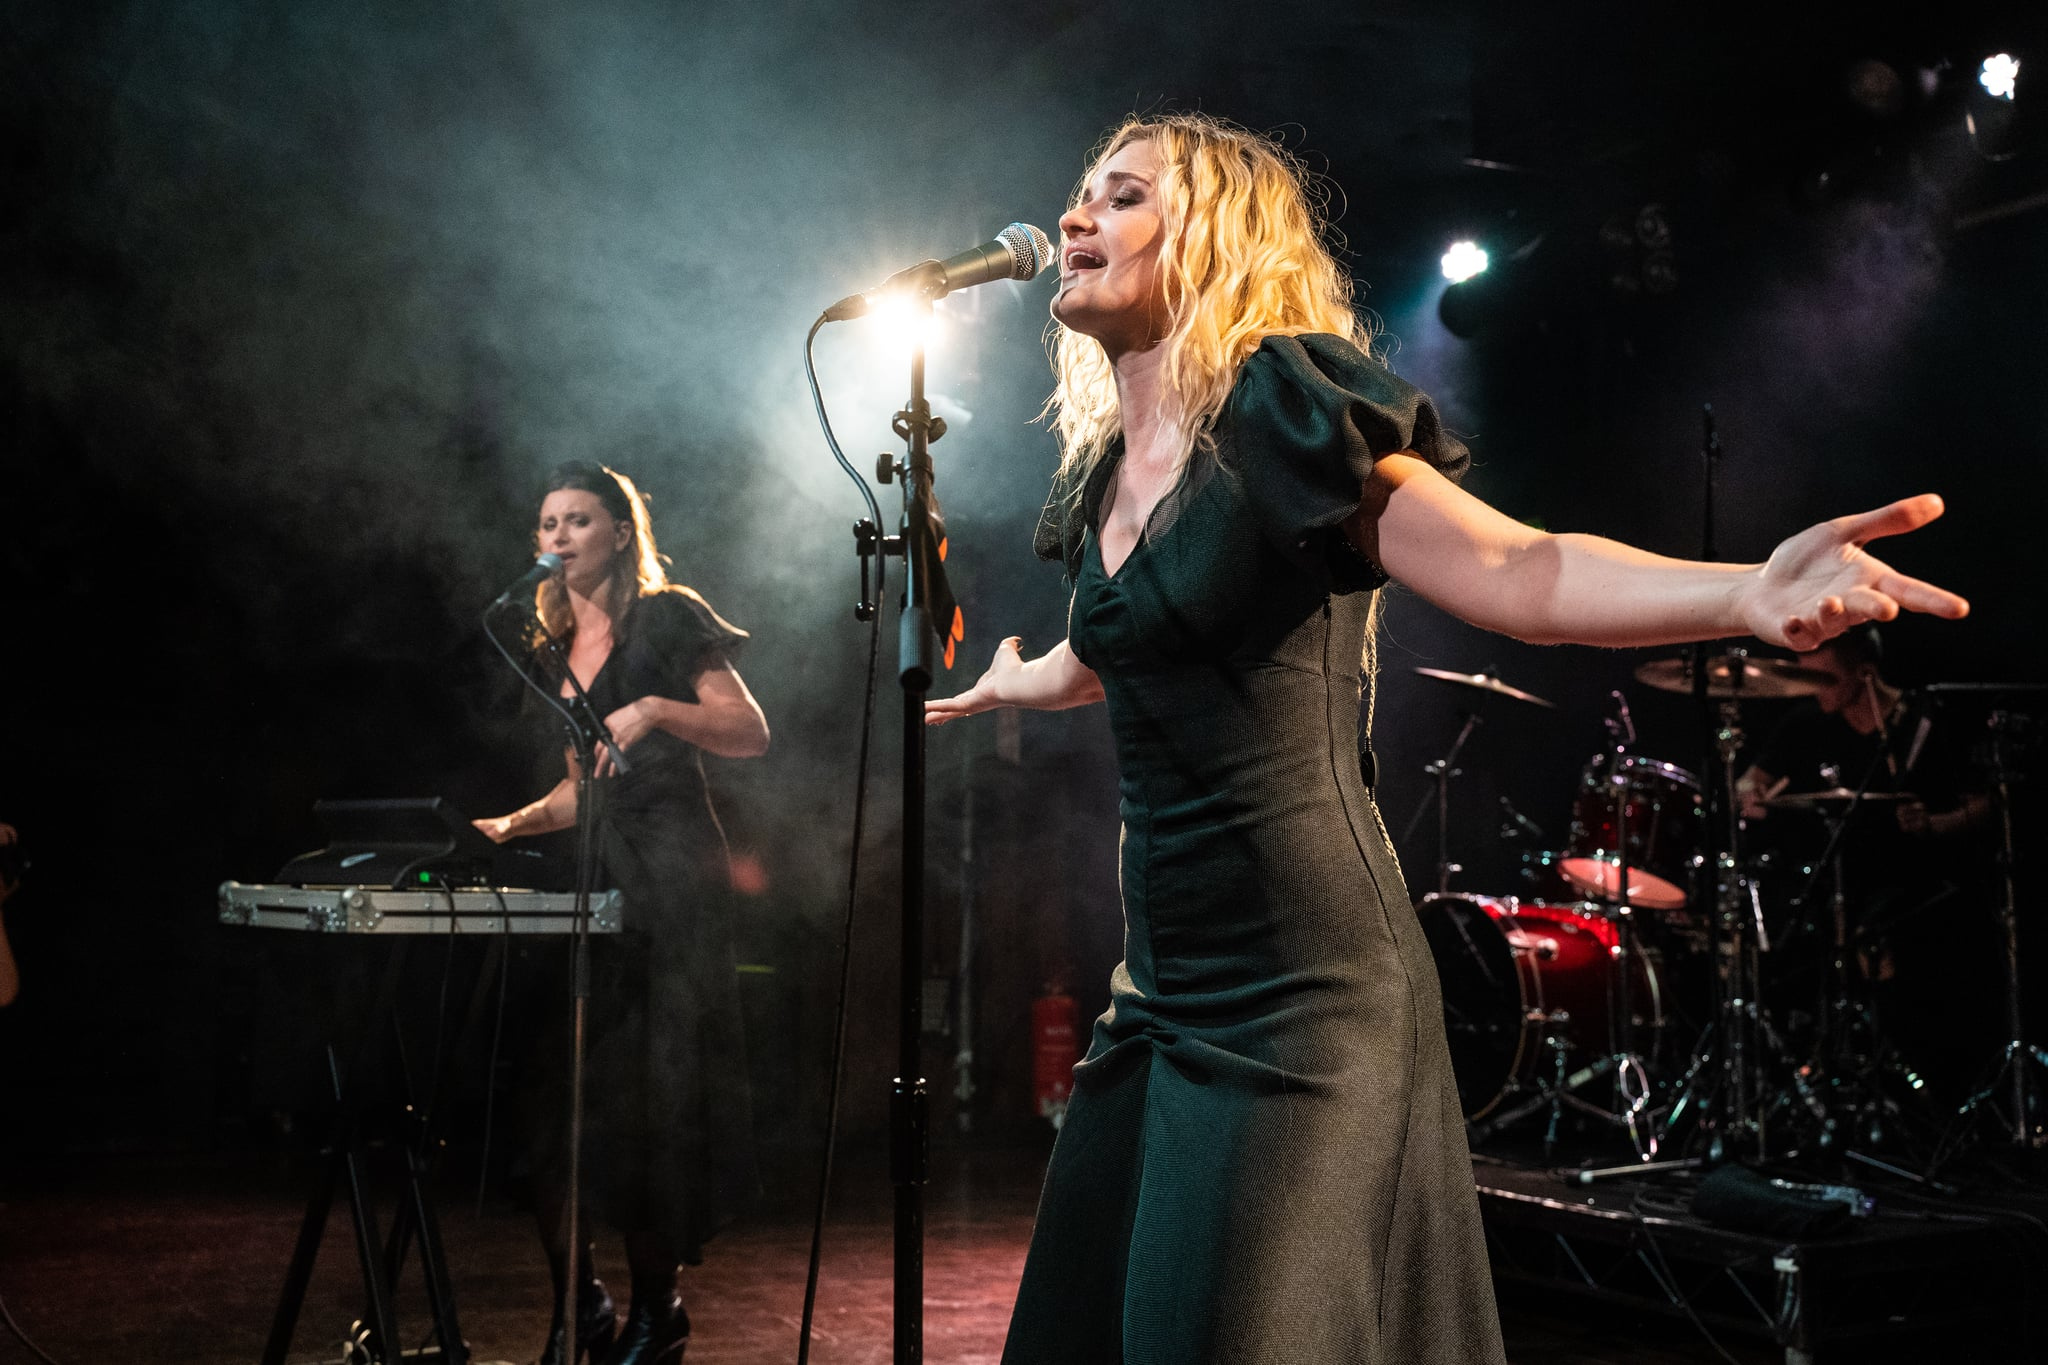 LONDON, ENGLAND - JULY 11: Aly and AJ perform at Scala on July 11, 2019 in London, England. (Photo by Lorne Thomson/Redferns)